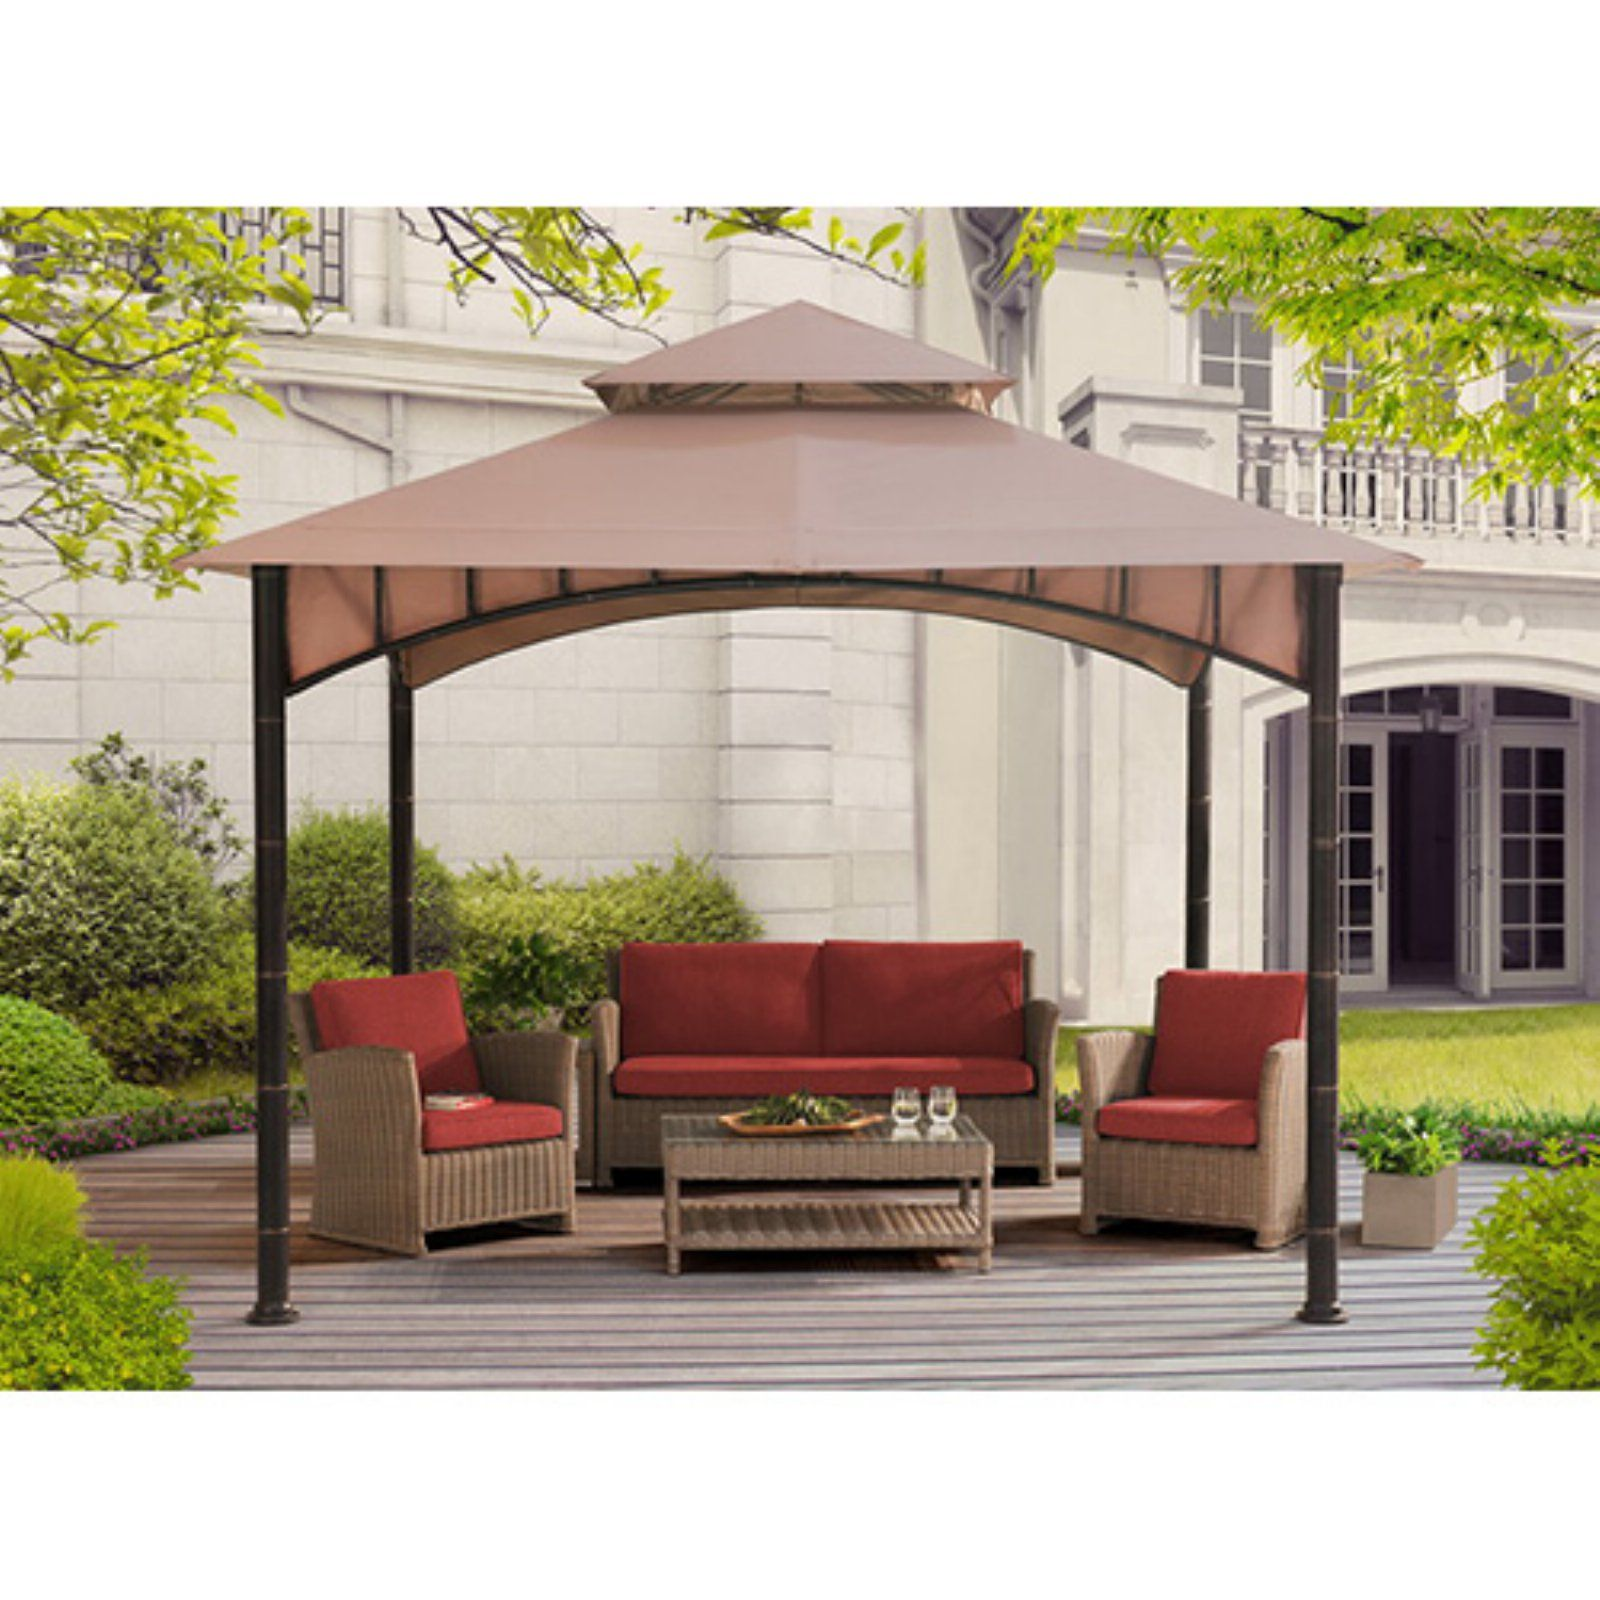 Sunjoy 10 X 10 Ft Replacement Canopy Cover For D Gz136pst N Summer Breeze Soft Top Gazebo Gazebo Pergola Swing Pergola Patio